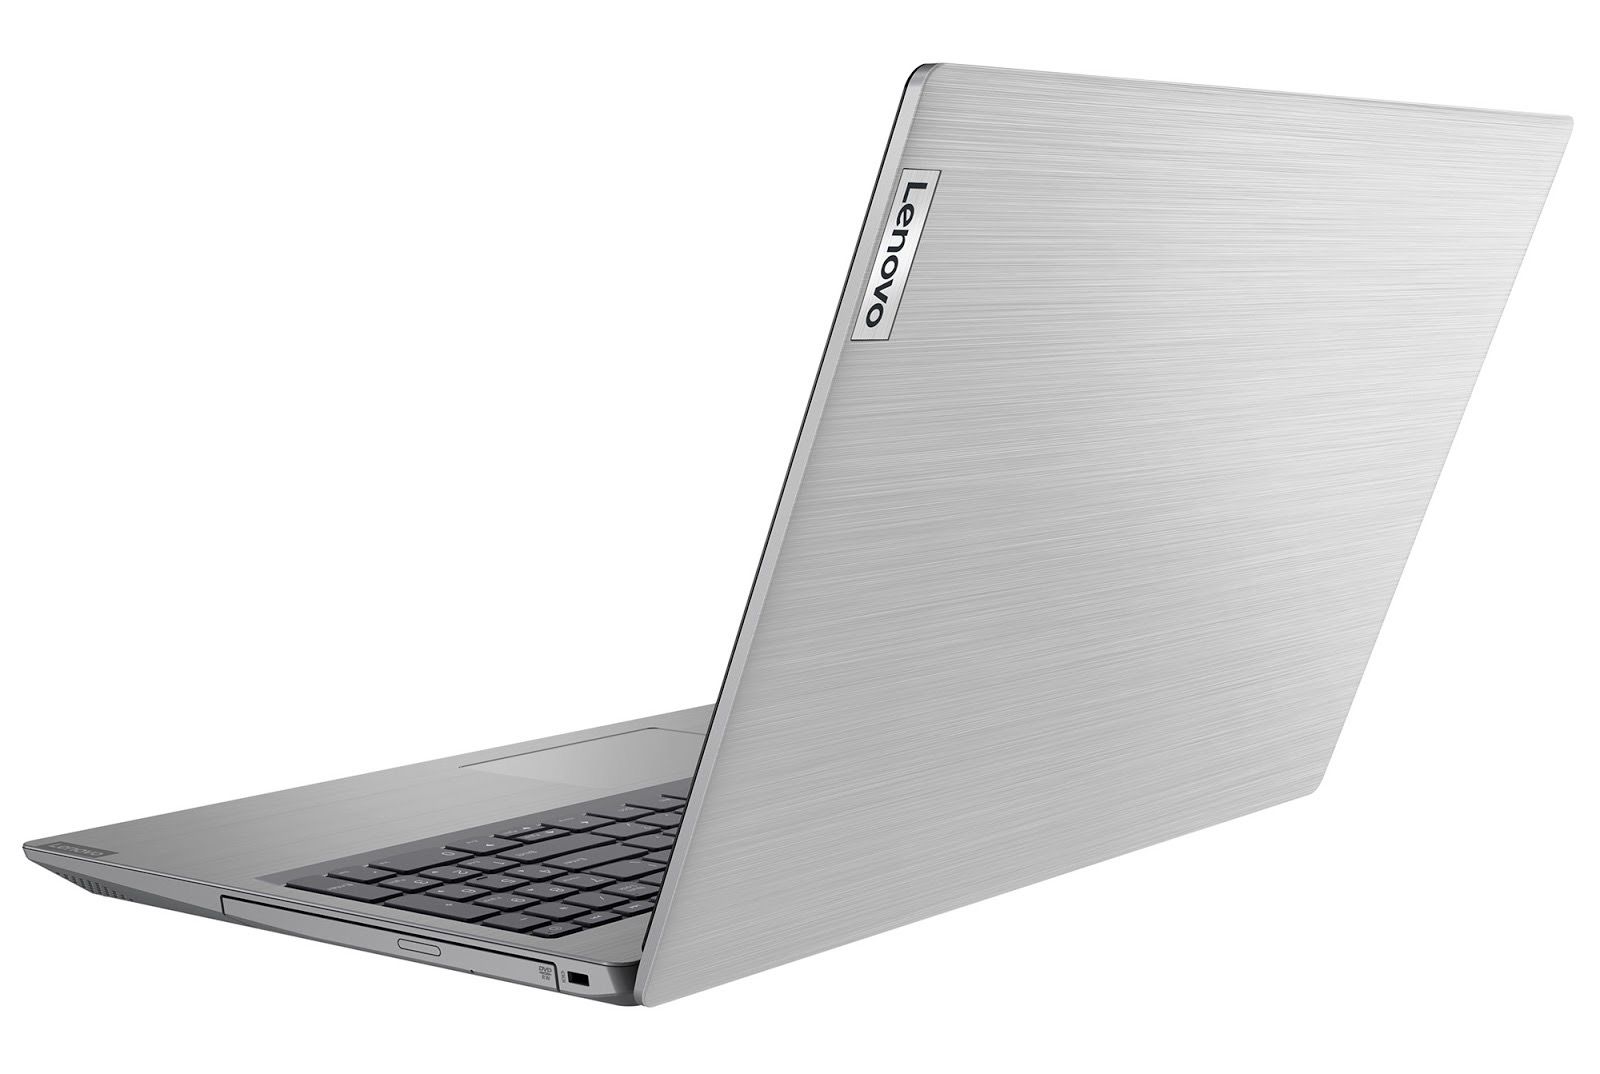 Фото 1. Ноутбук Lenovo ideapad L3 15IML05 Platinum Grey (81Y300J6RE)